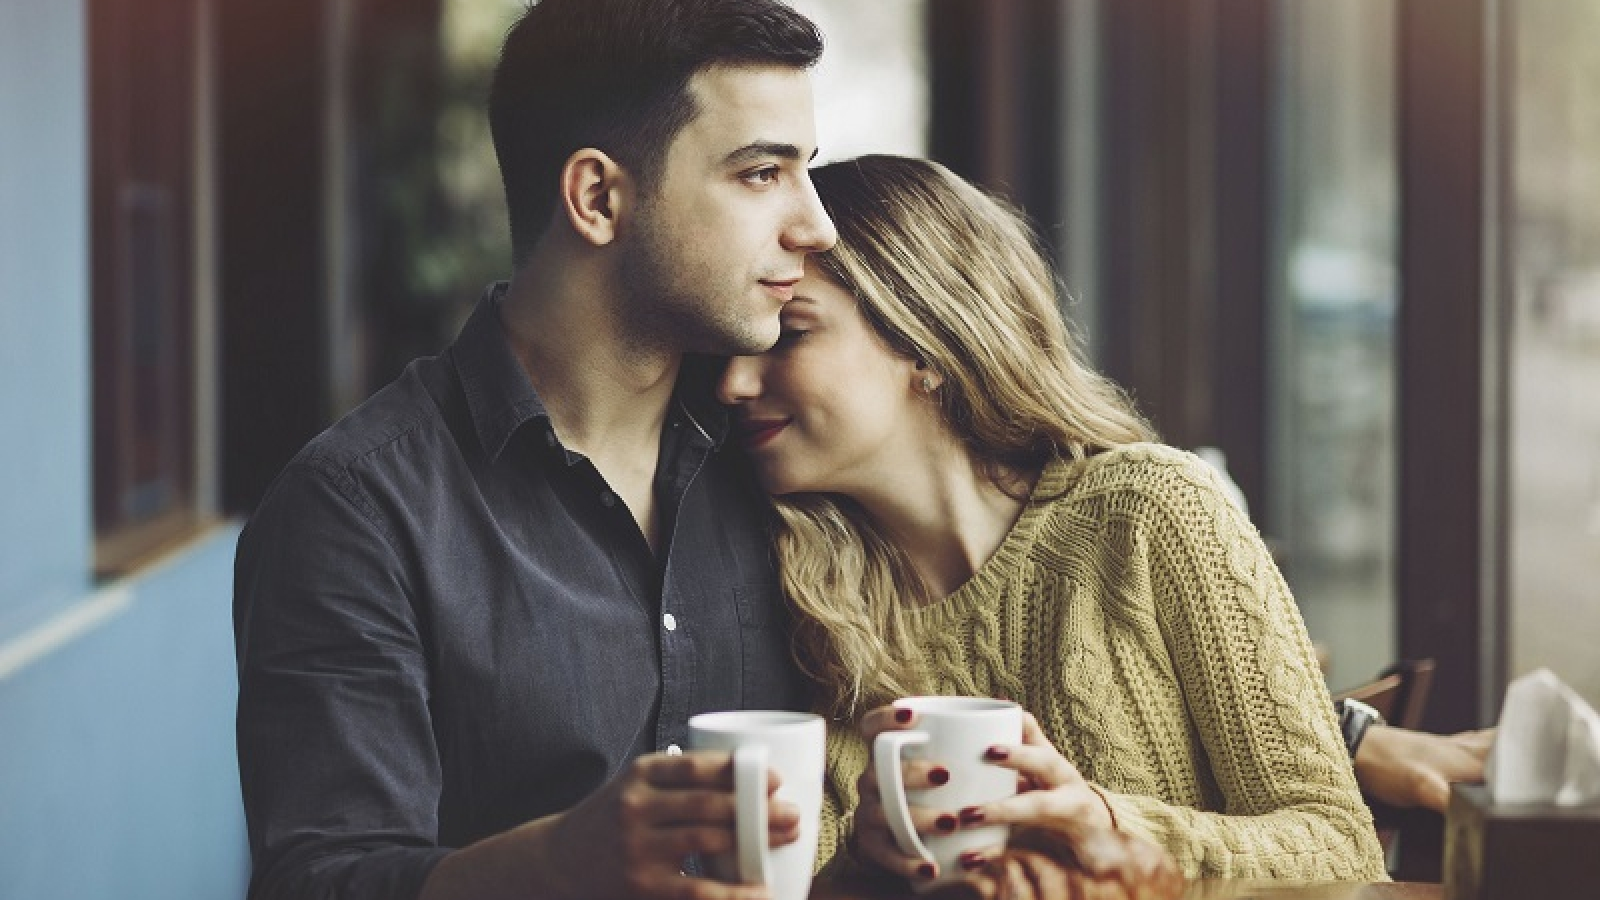 Love at first sight: everything you need to know about love at first sight